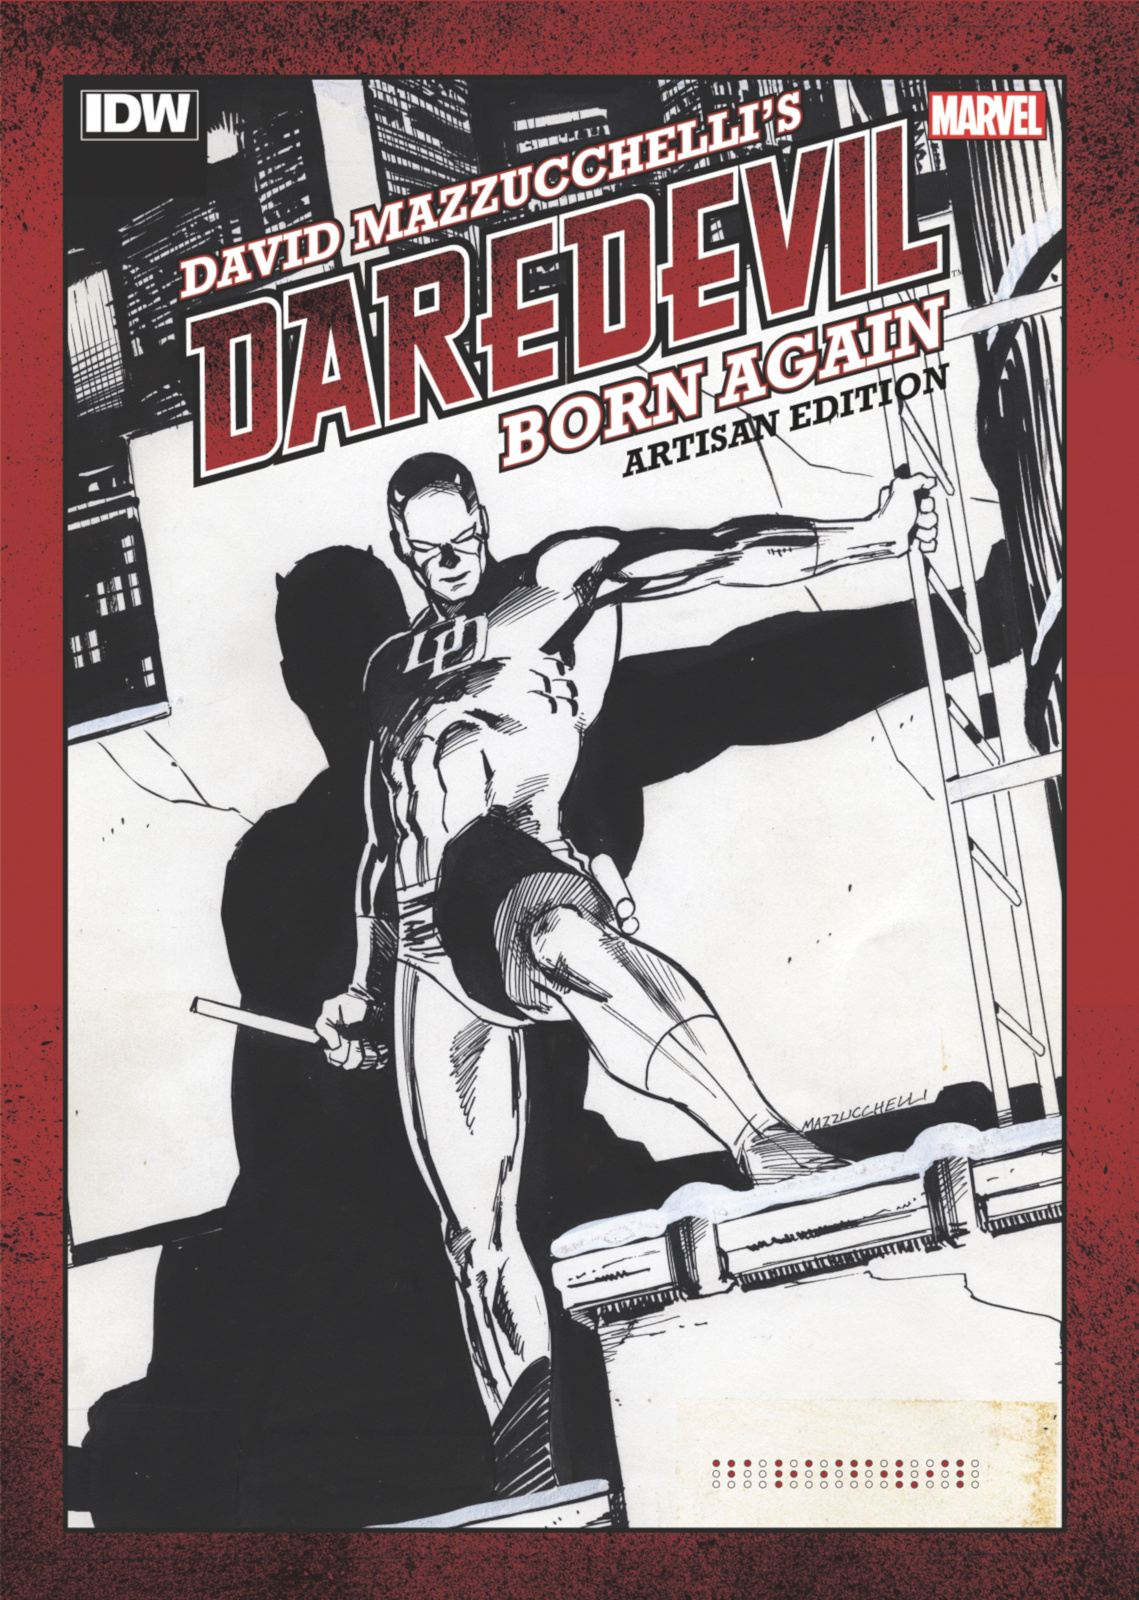 Out today: David Mazzucchelli's Daredevil: Born Again Artisan Edition 1